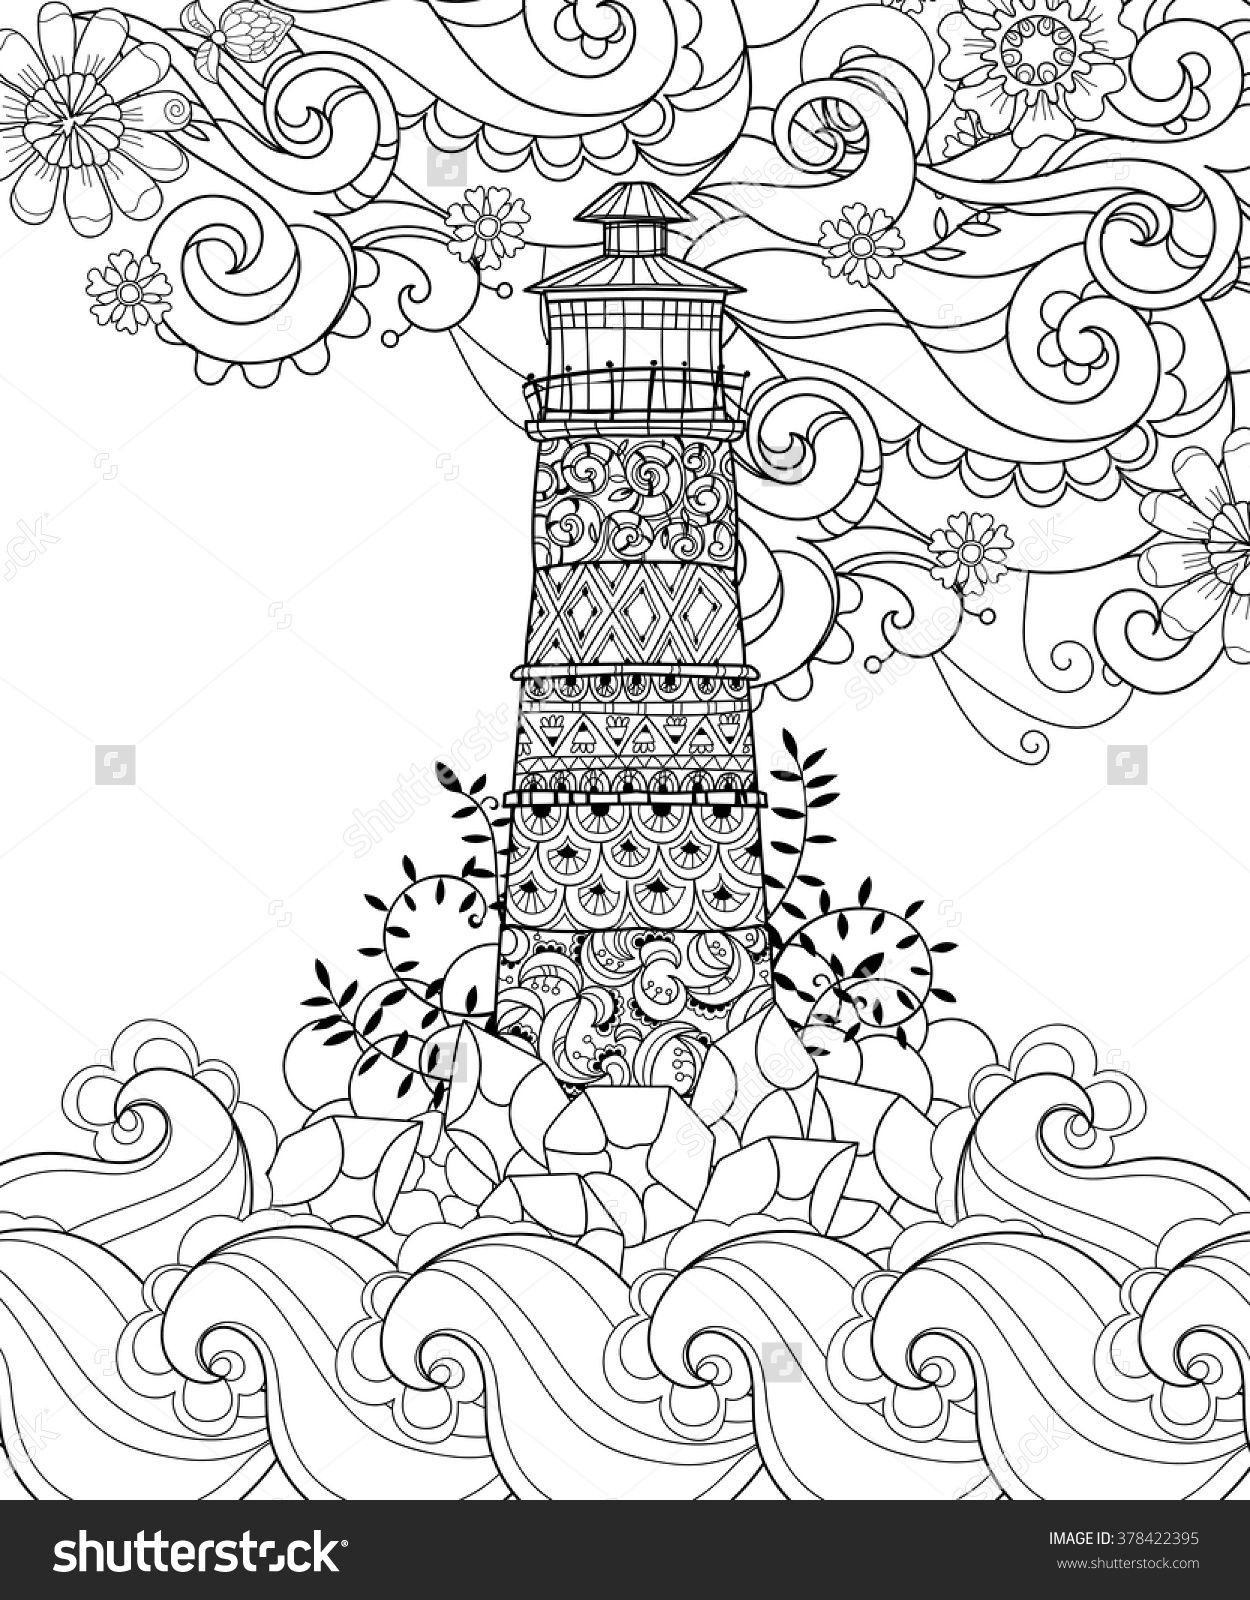 Lighthouse Coloring Pages  Gallery 8f - Free Download